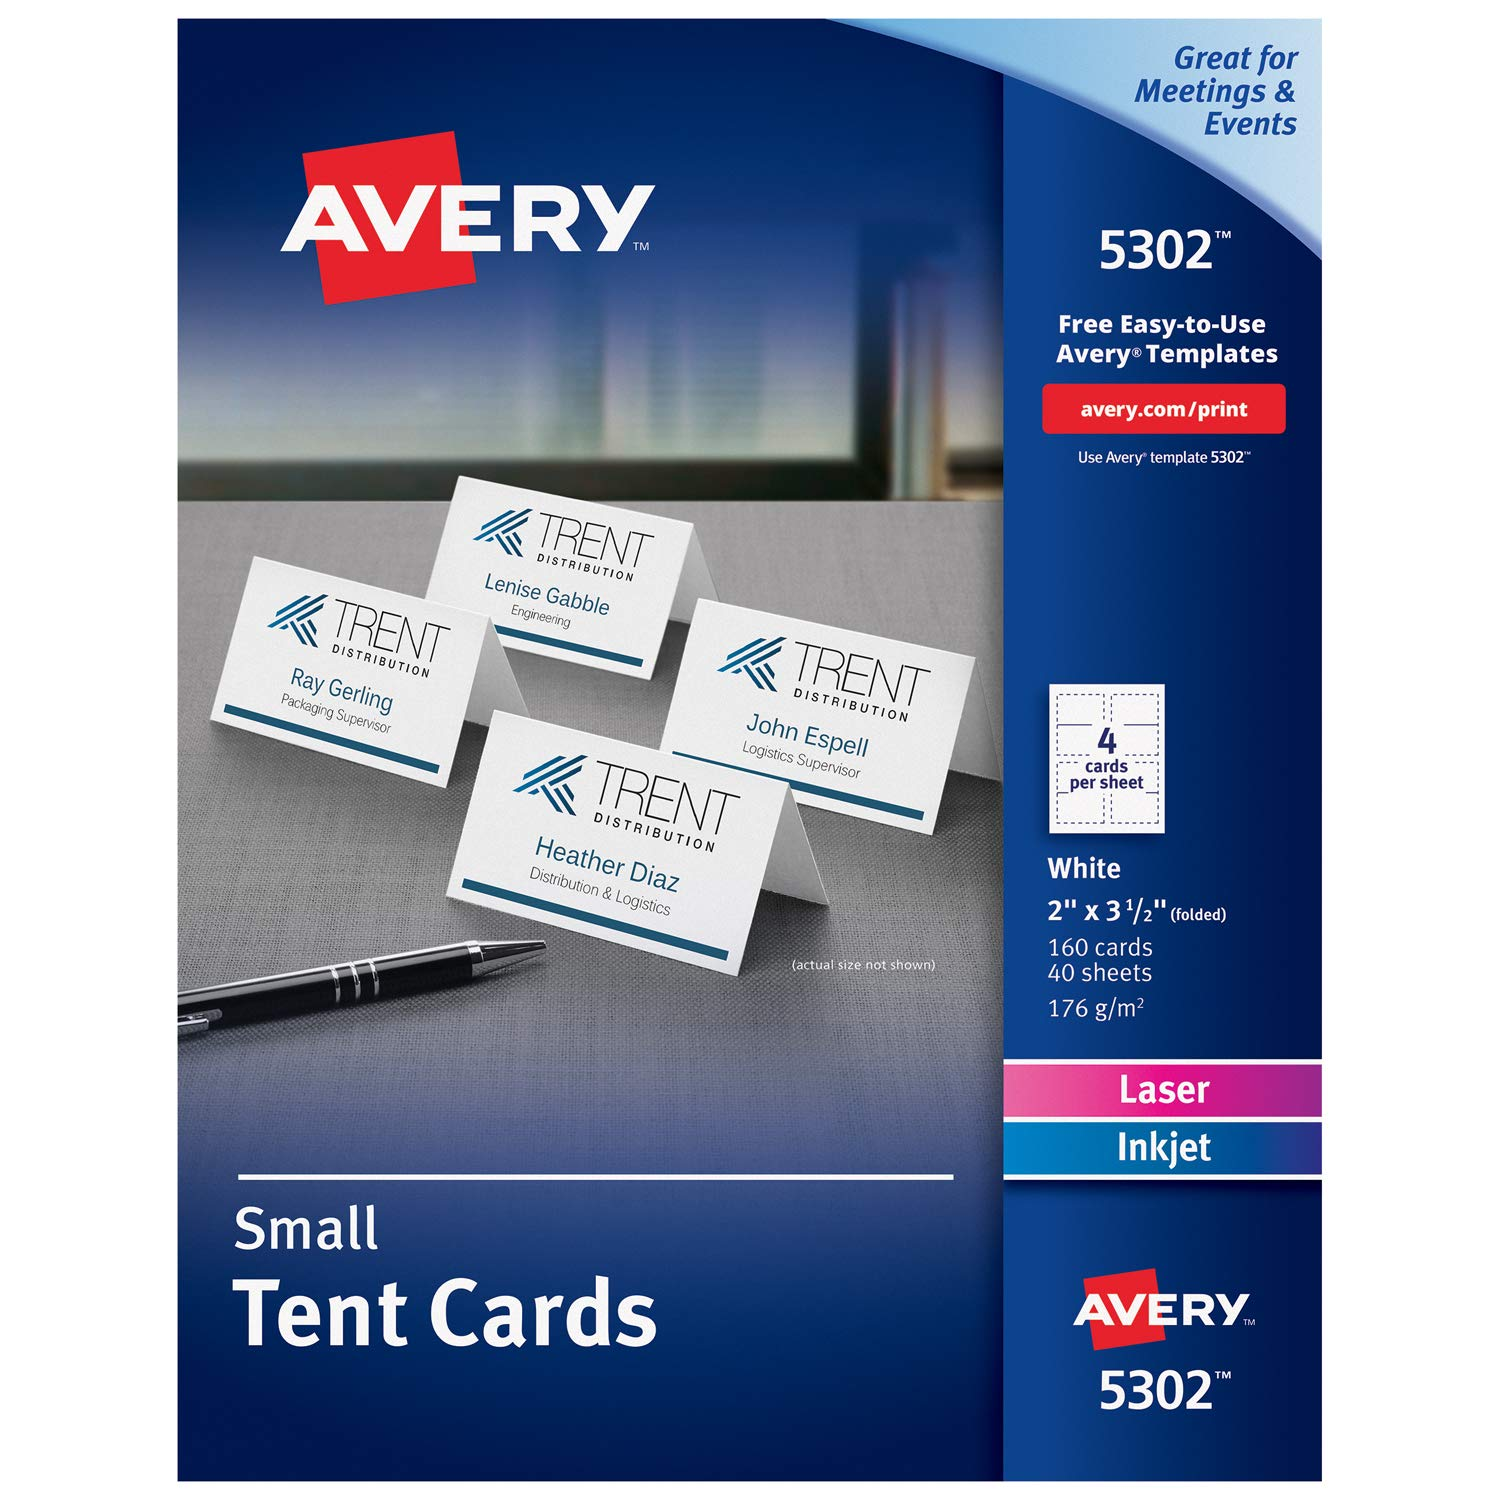 image regarding Deal a Meal Cards Printable identified as Avery Room Playing cards, Laser Inkjet Printers, 160 Printable Playing cards, 2 x 3.5 (5302), White